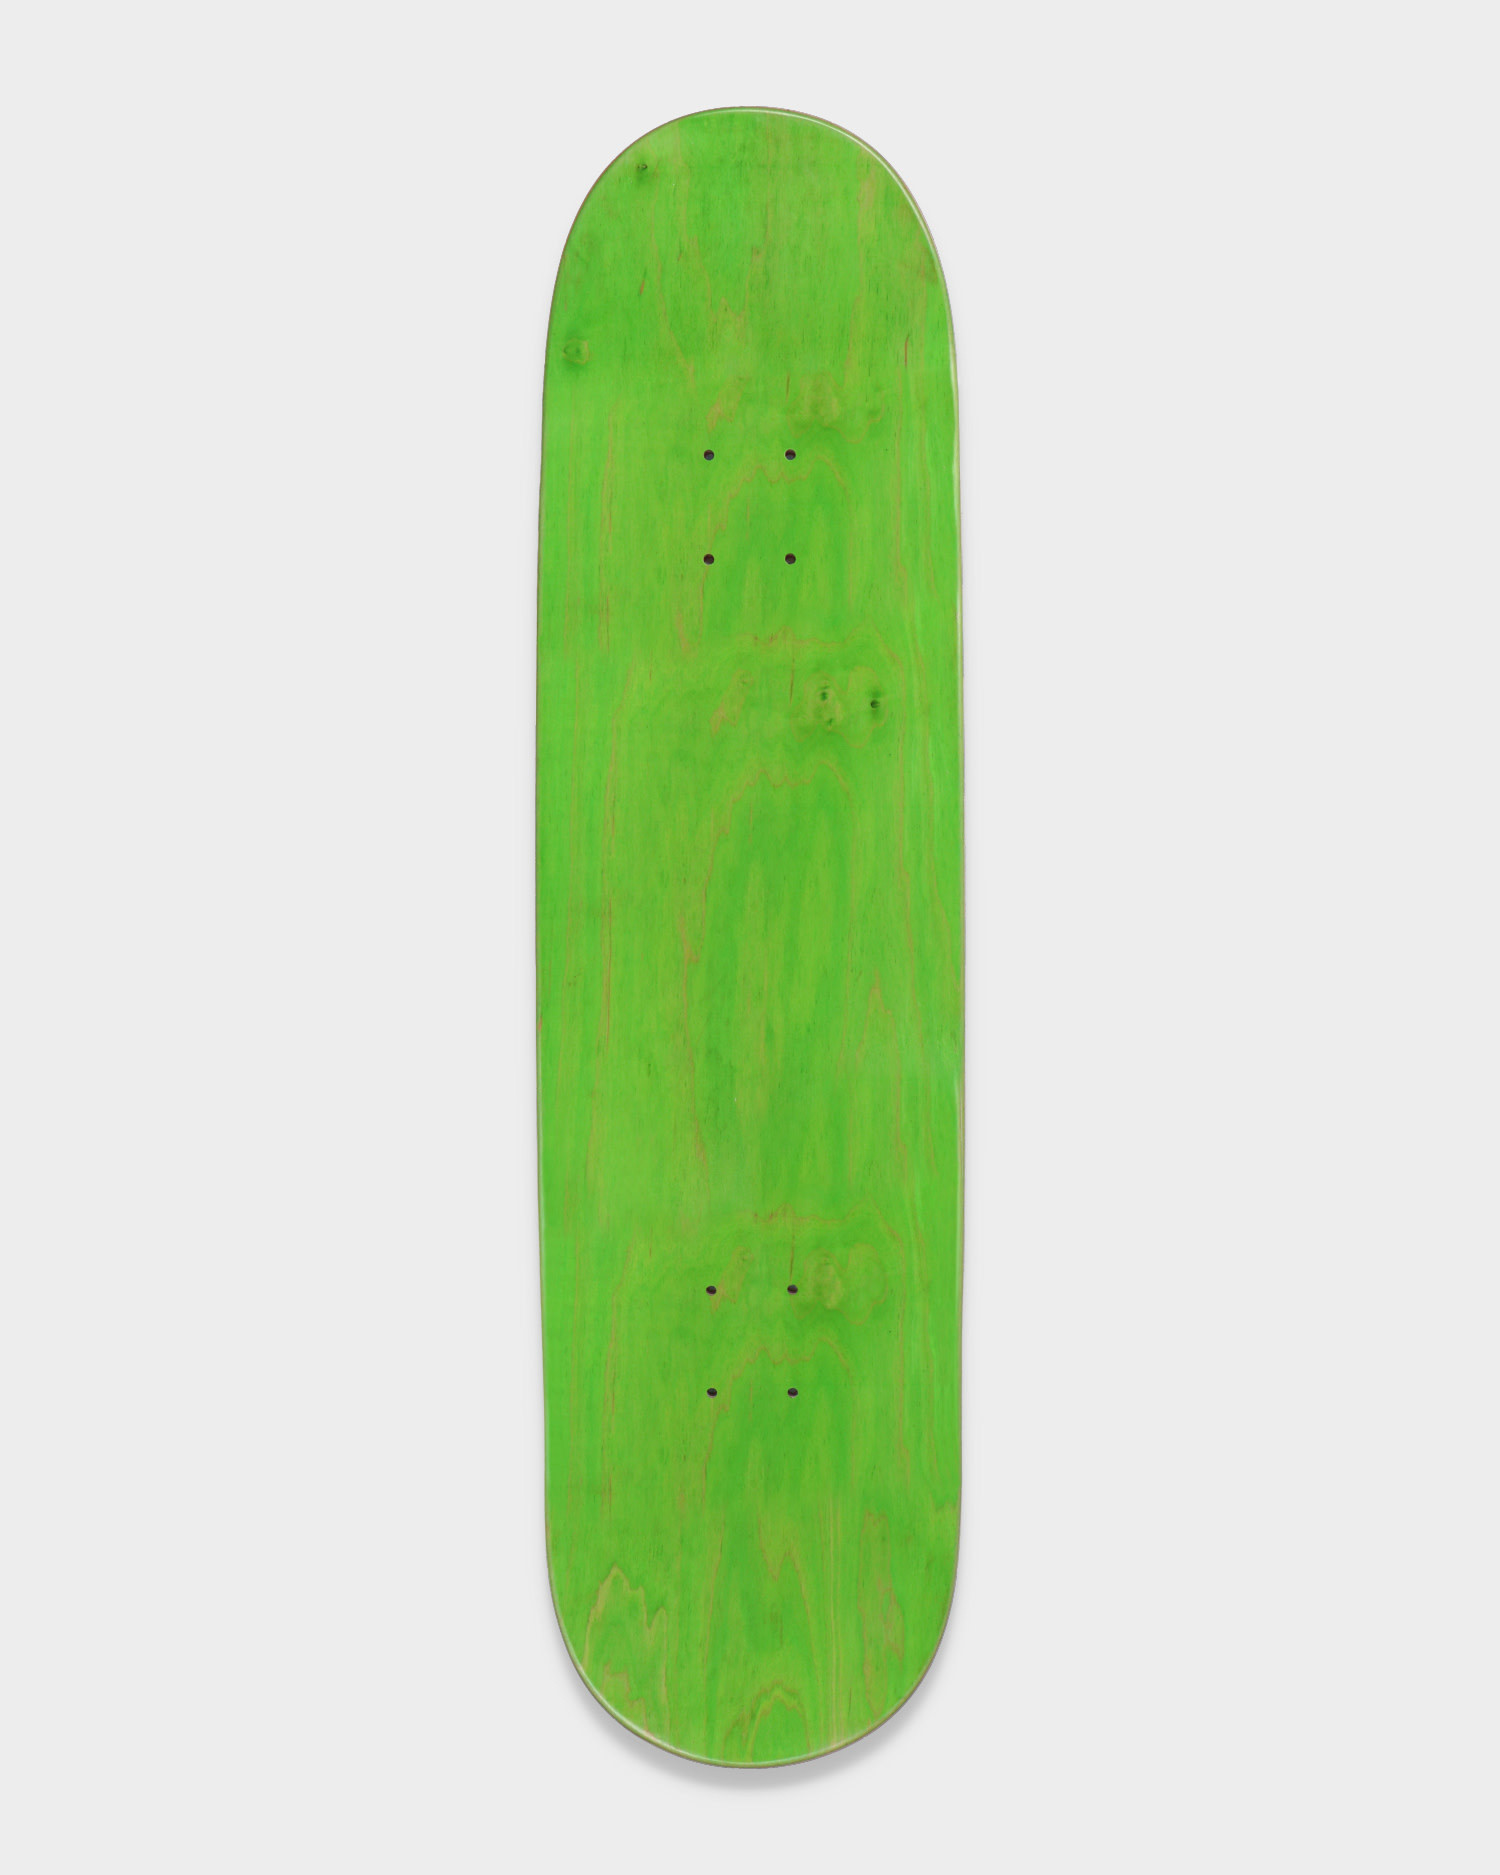 Lockwood College Deck White Green Special Shape Squared 8.375